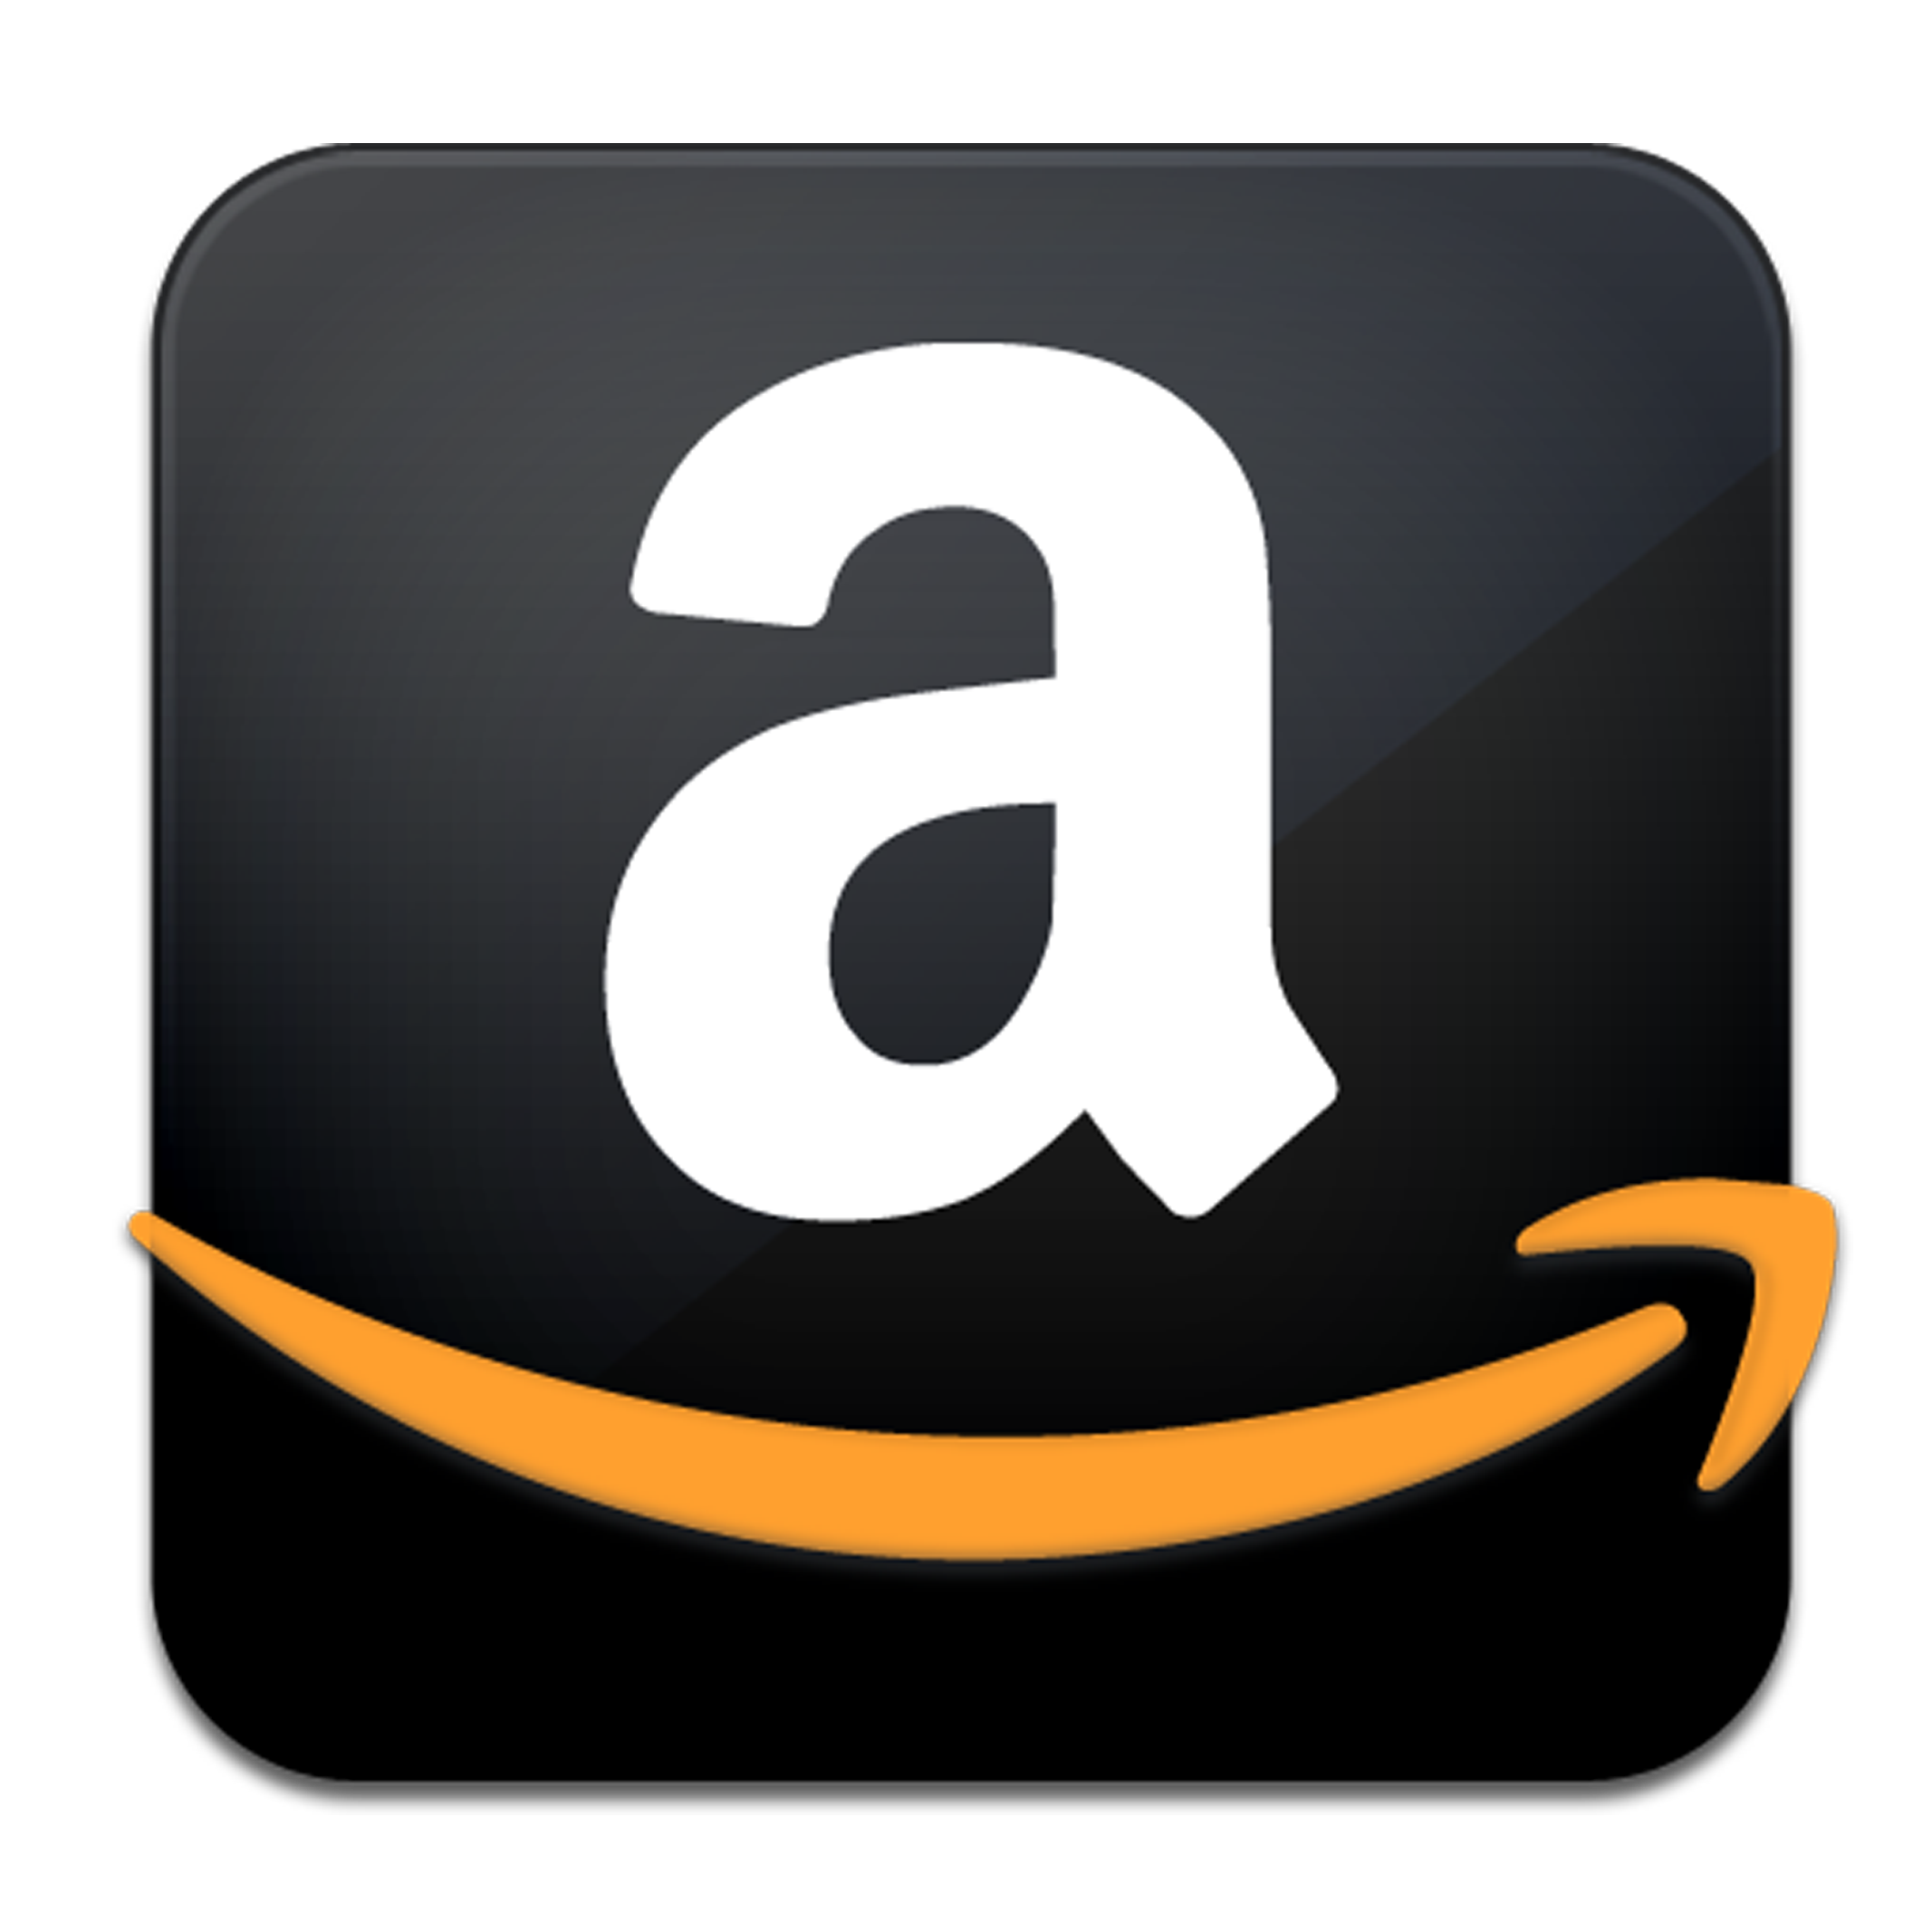 Amazon Font and Amazon Logo